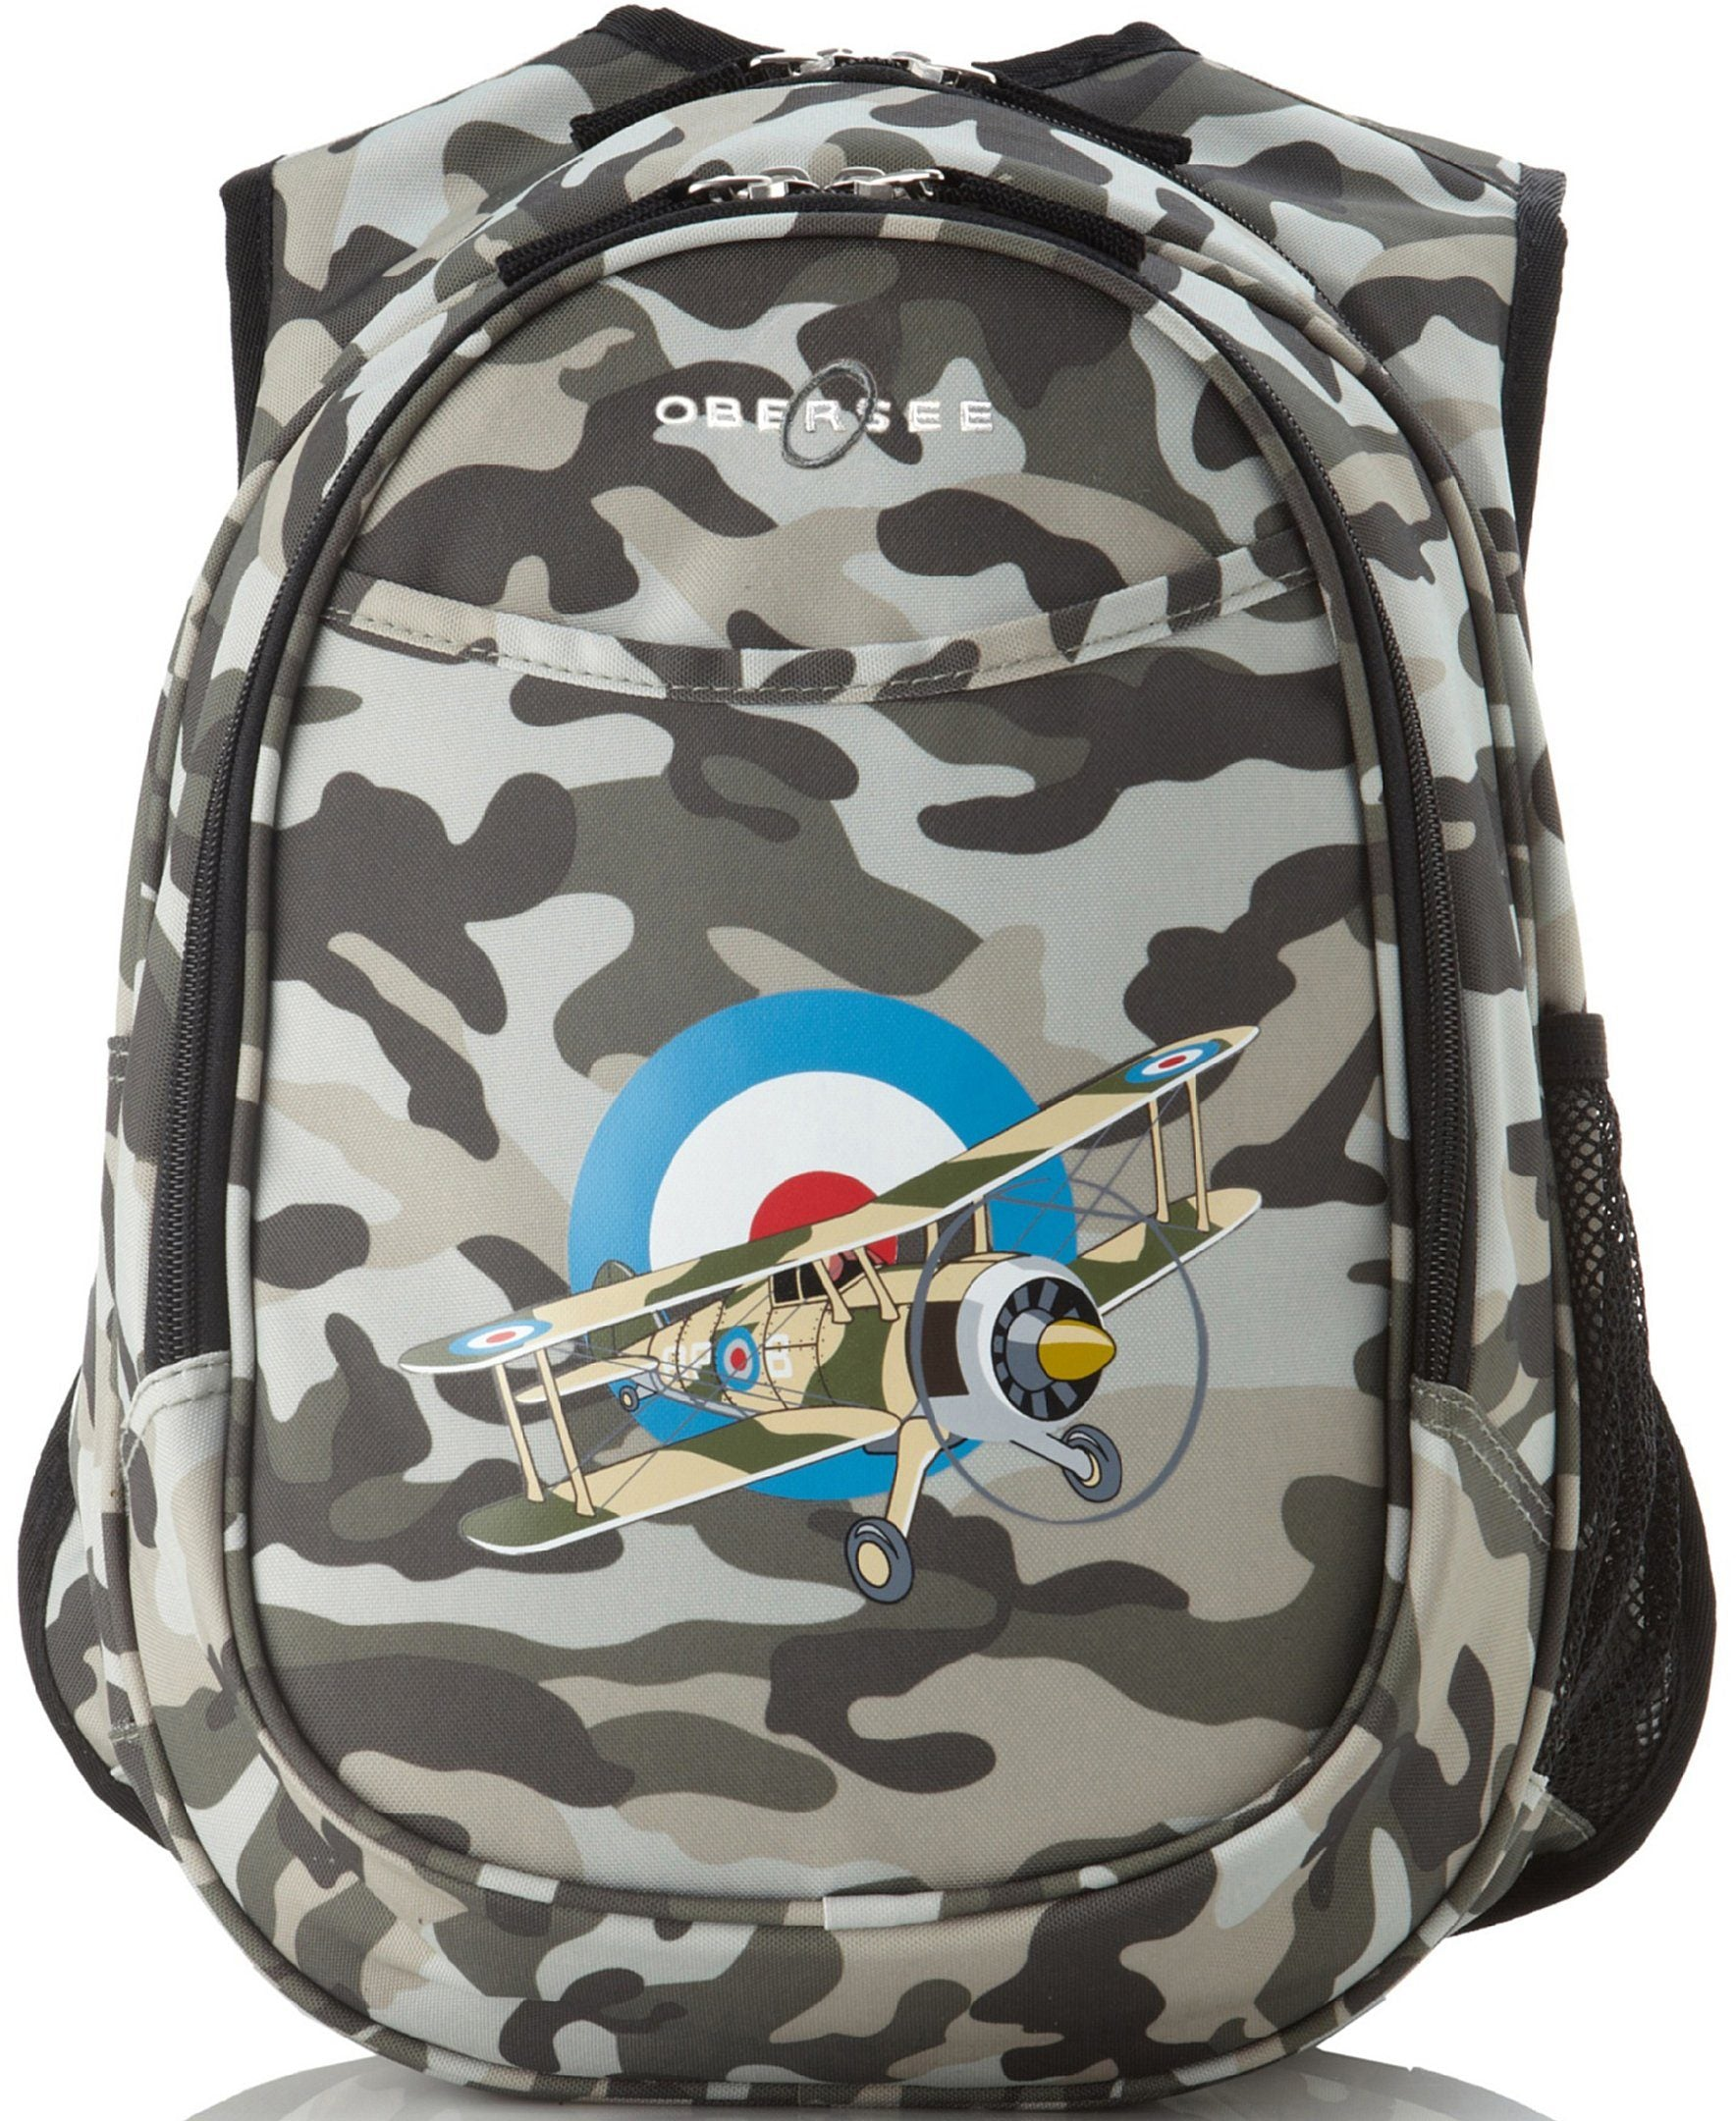 O3KCBP006 Obersee Mini Preschool All-in-One Backpack for Toddlers and Kids with integrated Insulated Cooler | Camo Camouflage Airplane